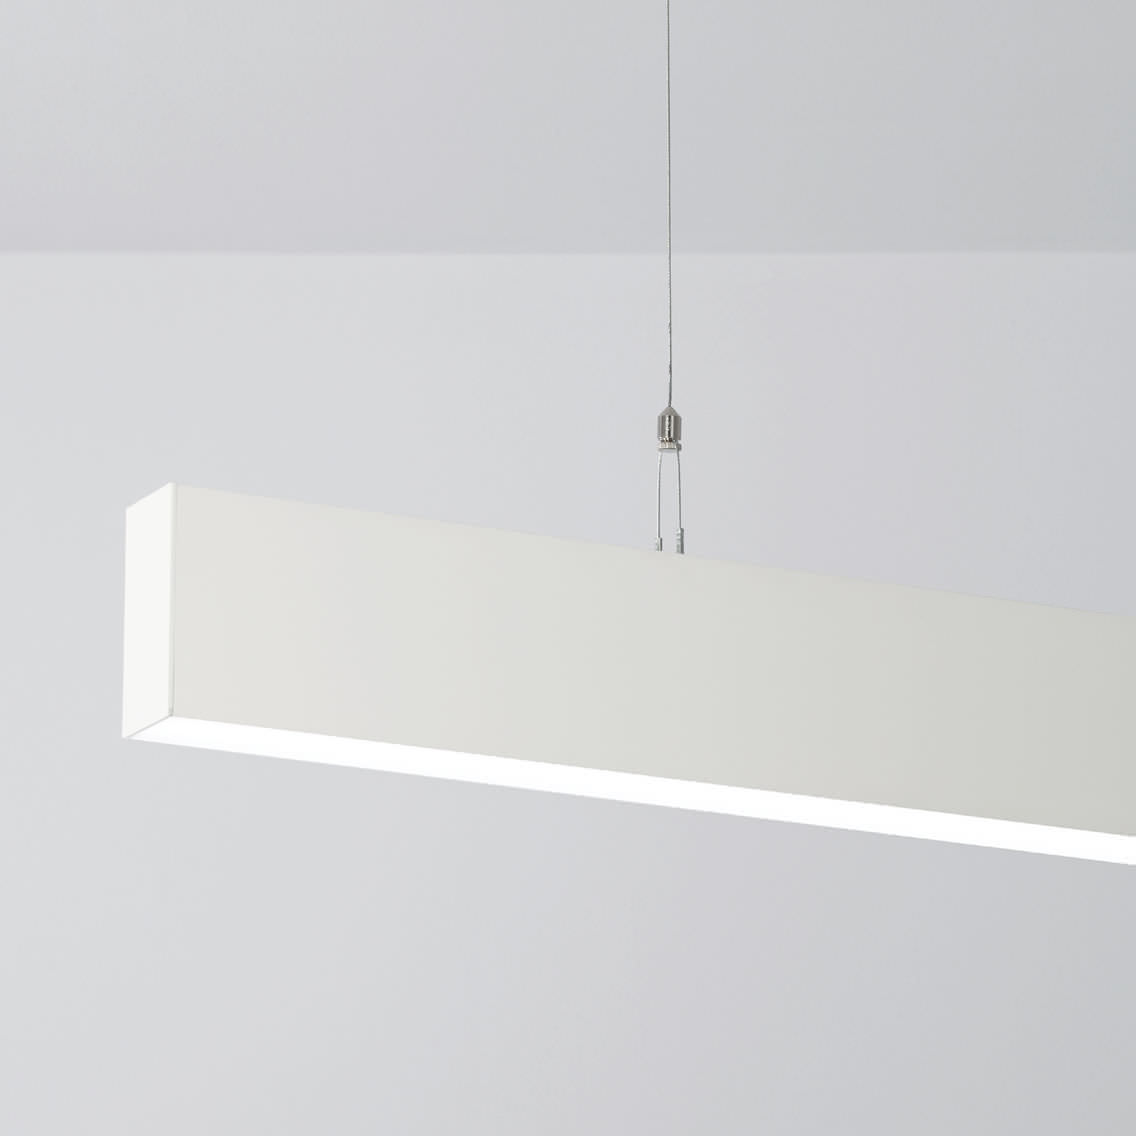 beautiful suspended light fixture with suspended fluorescent light